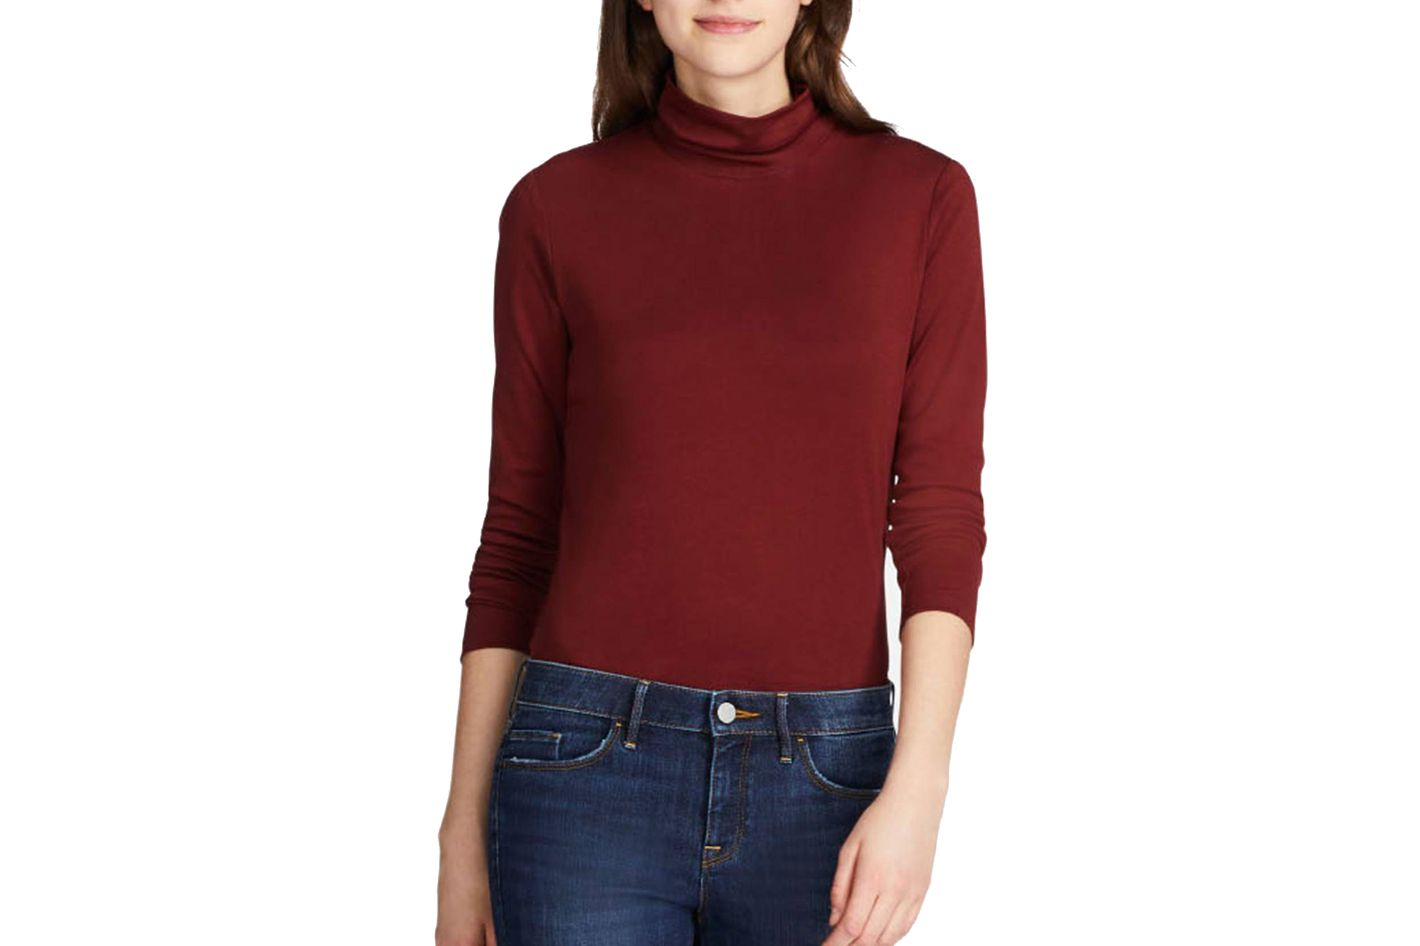 The 12 Best Turtleneck Sweaters for Women 2017